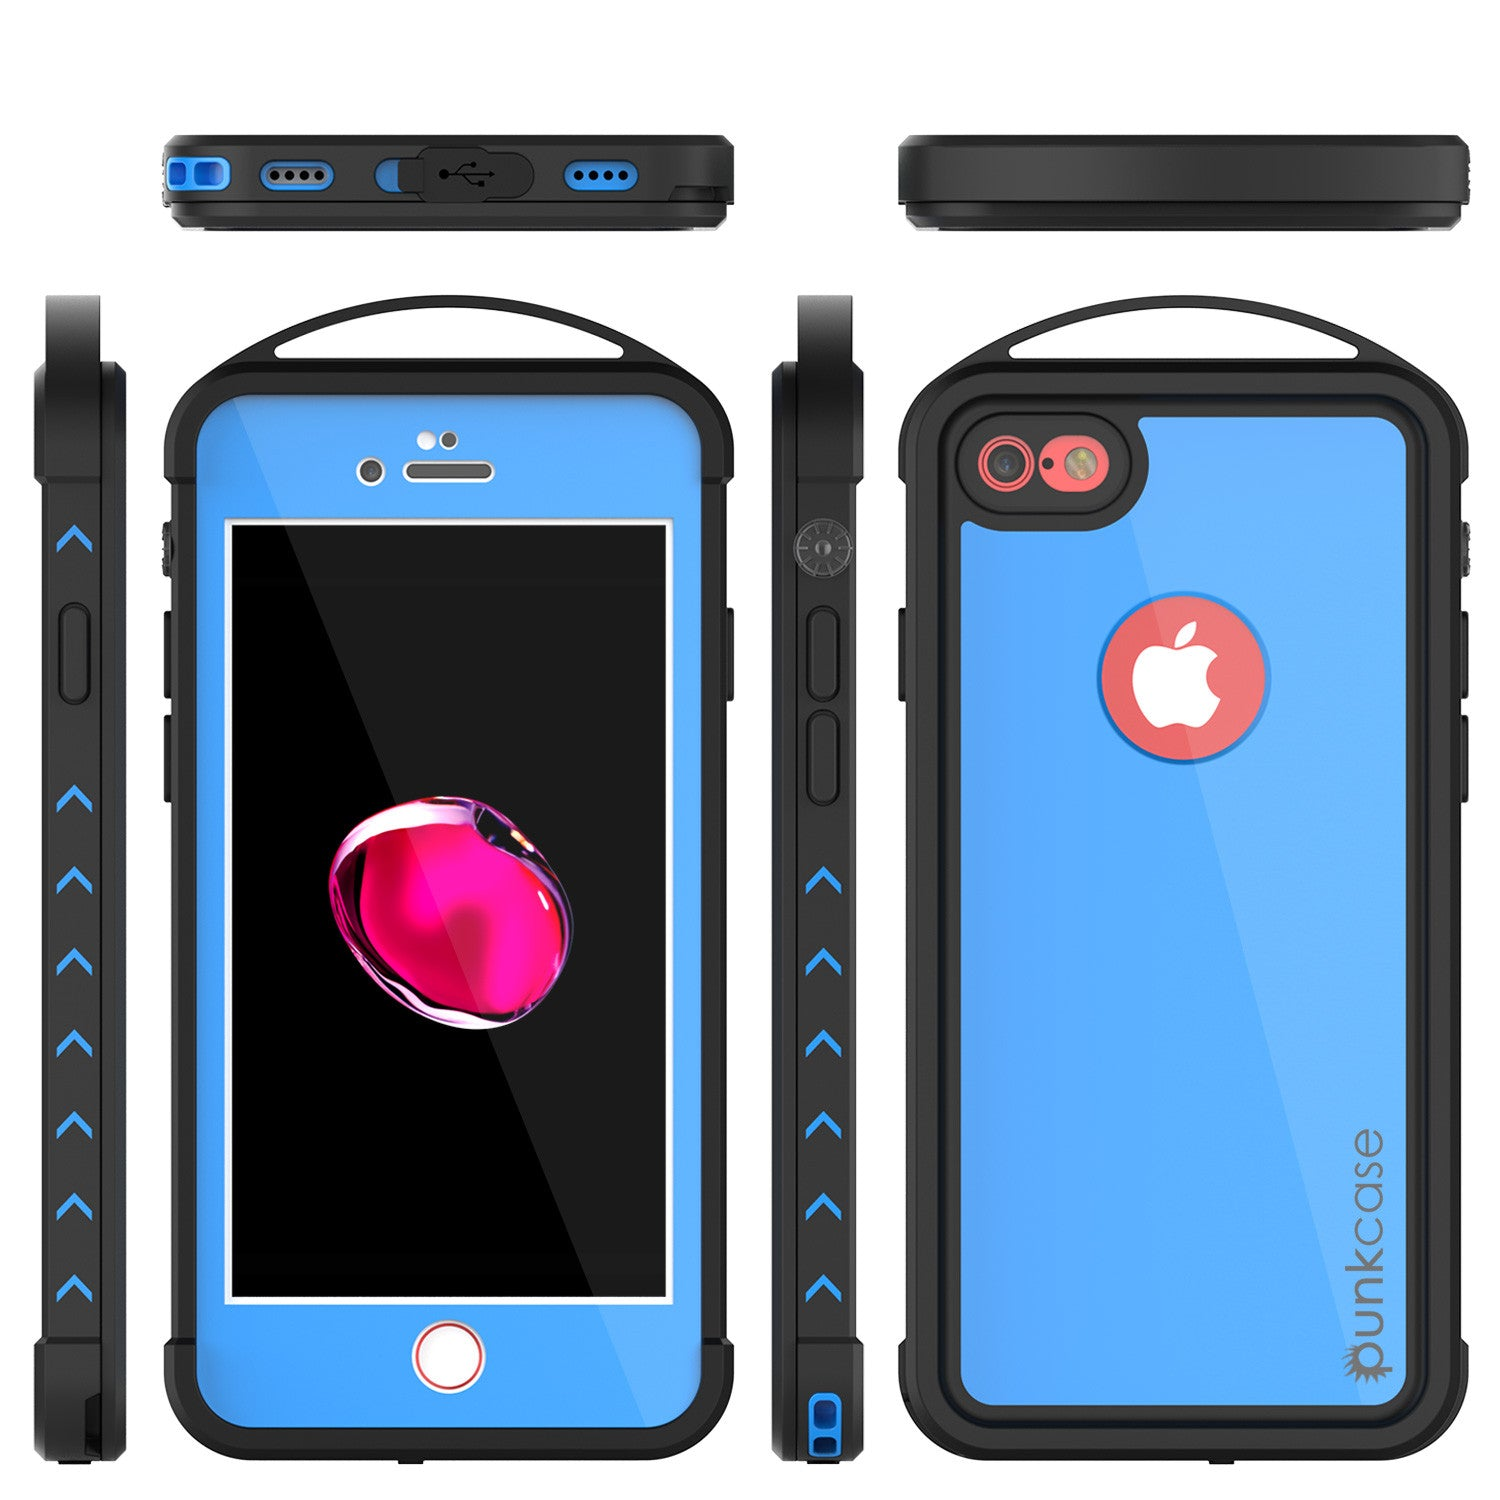 iPhone 7 Waterproof Case, Punkcase ALPINE Series, Light Blue | Heavy Duty Armor Cover